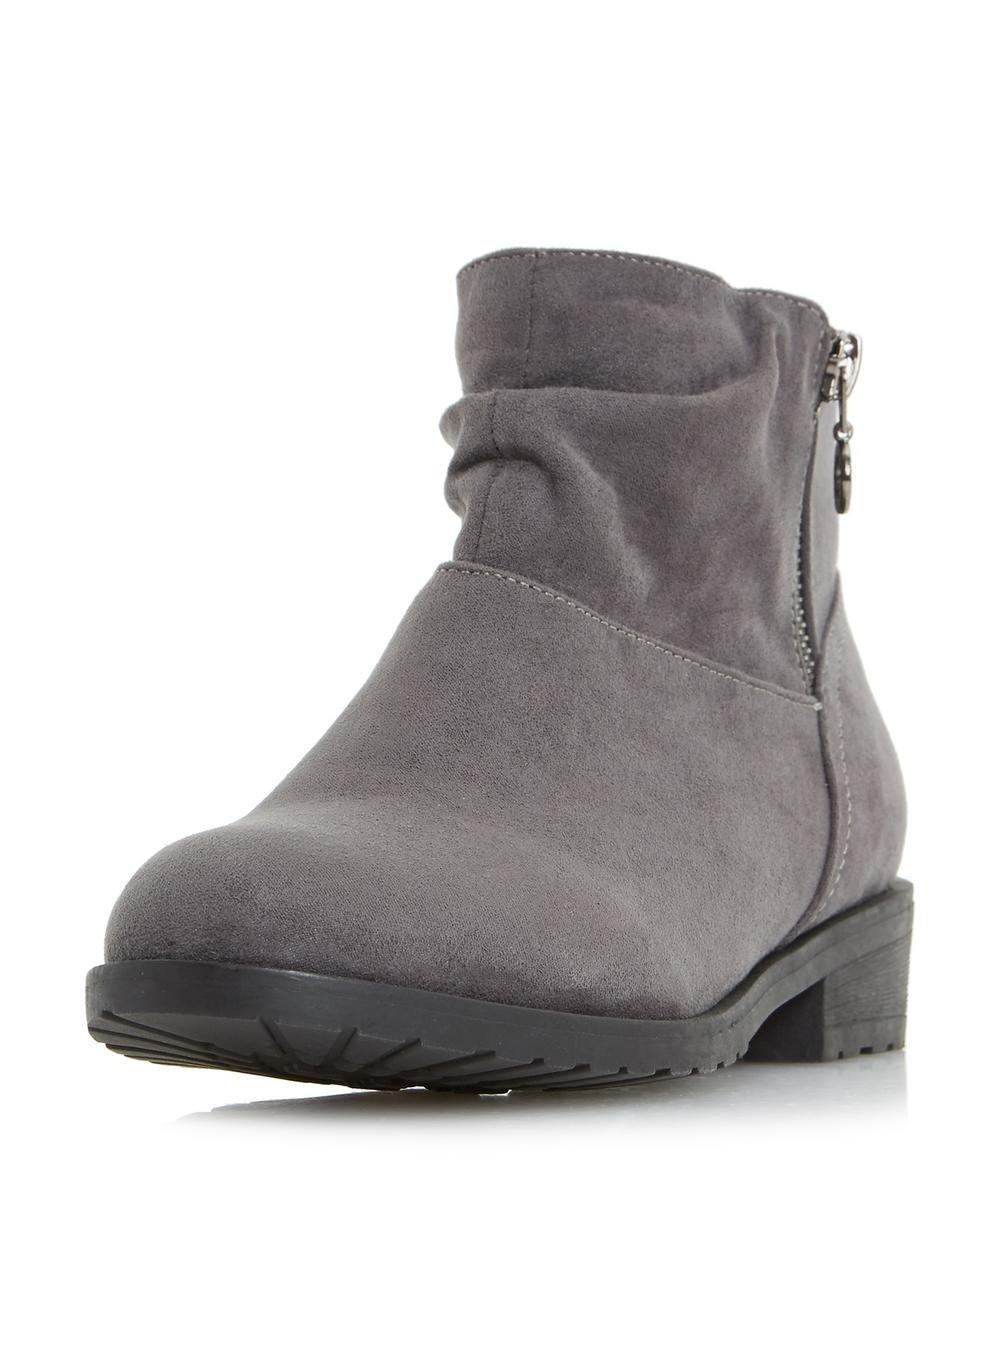 87a87f937 Dorothy Perkins Head Over Heels By Dune Grey Perci Ankle Boots in ...